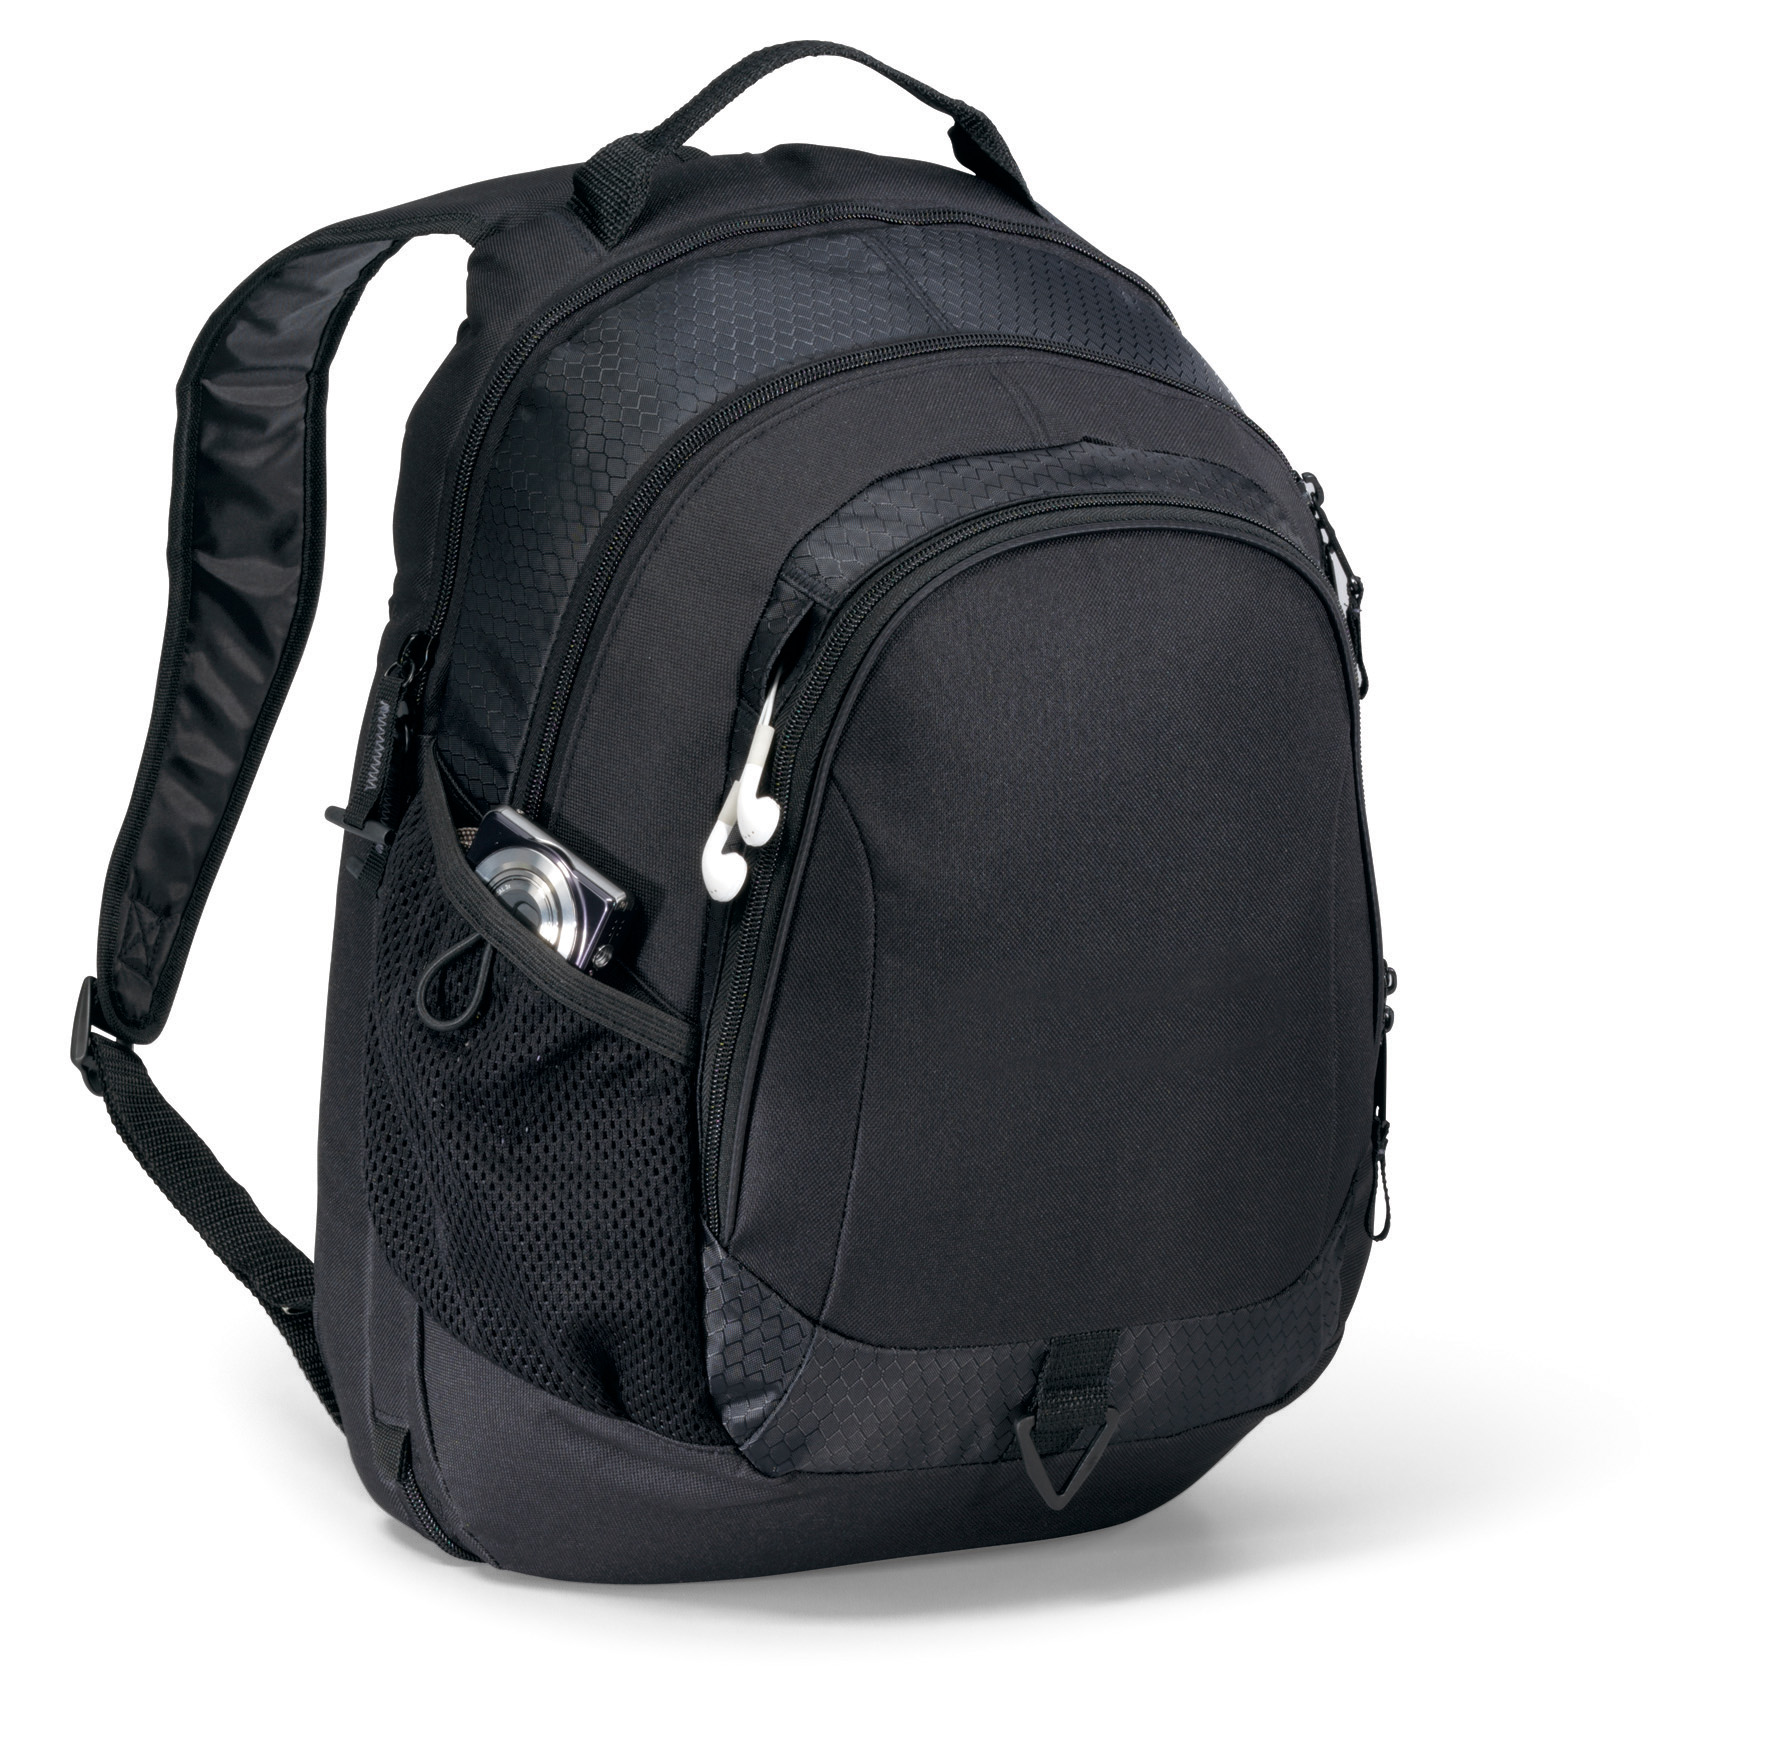 Gemline 4015 - Life in Motion™ Primary Computer Backpack